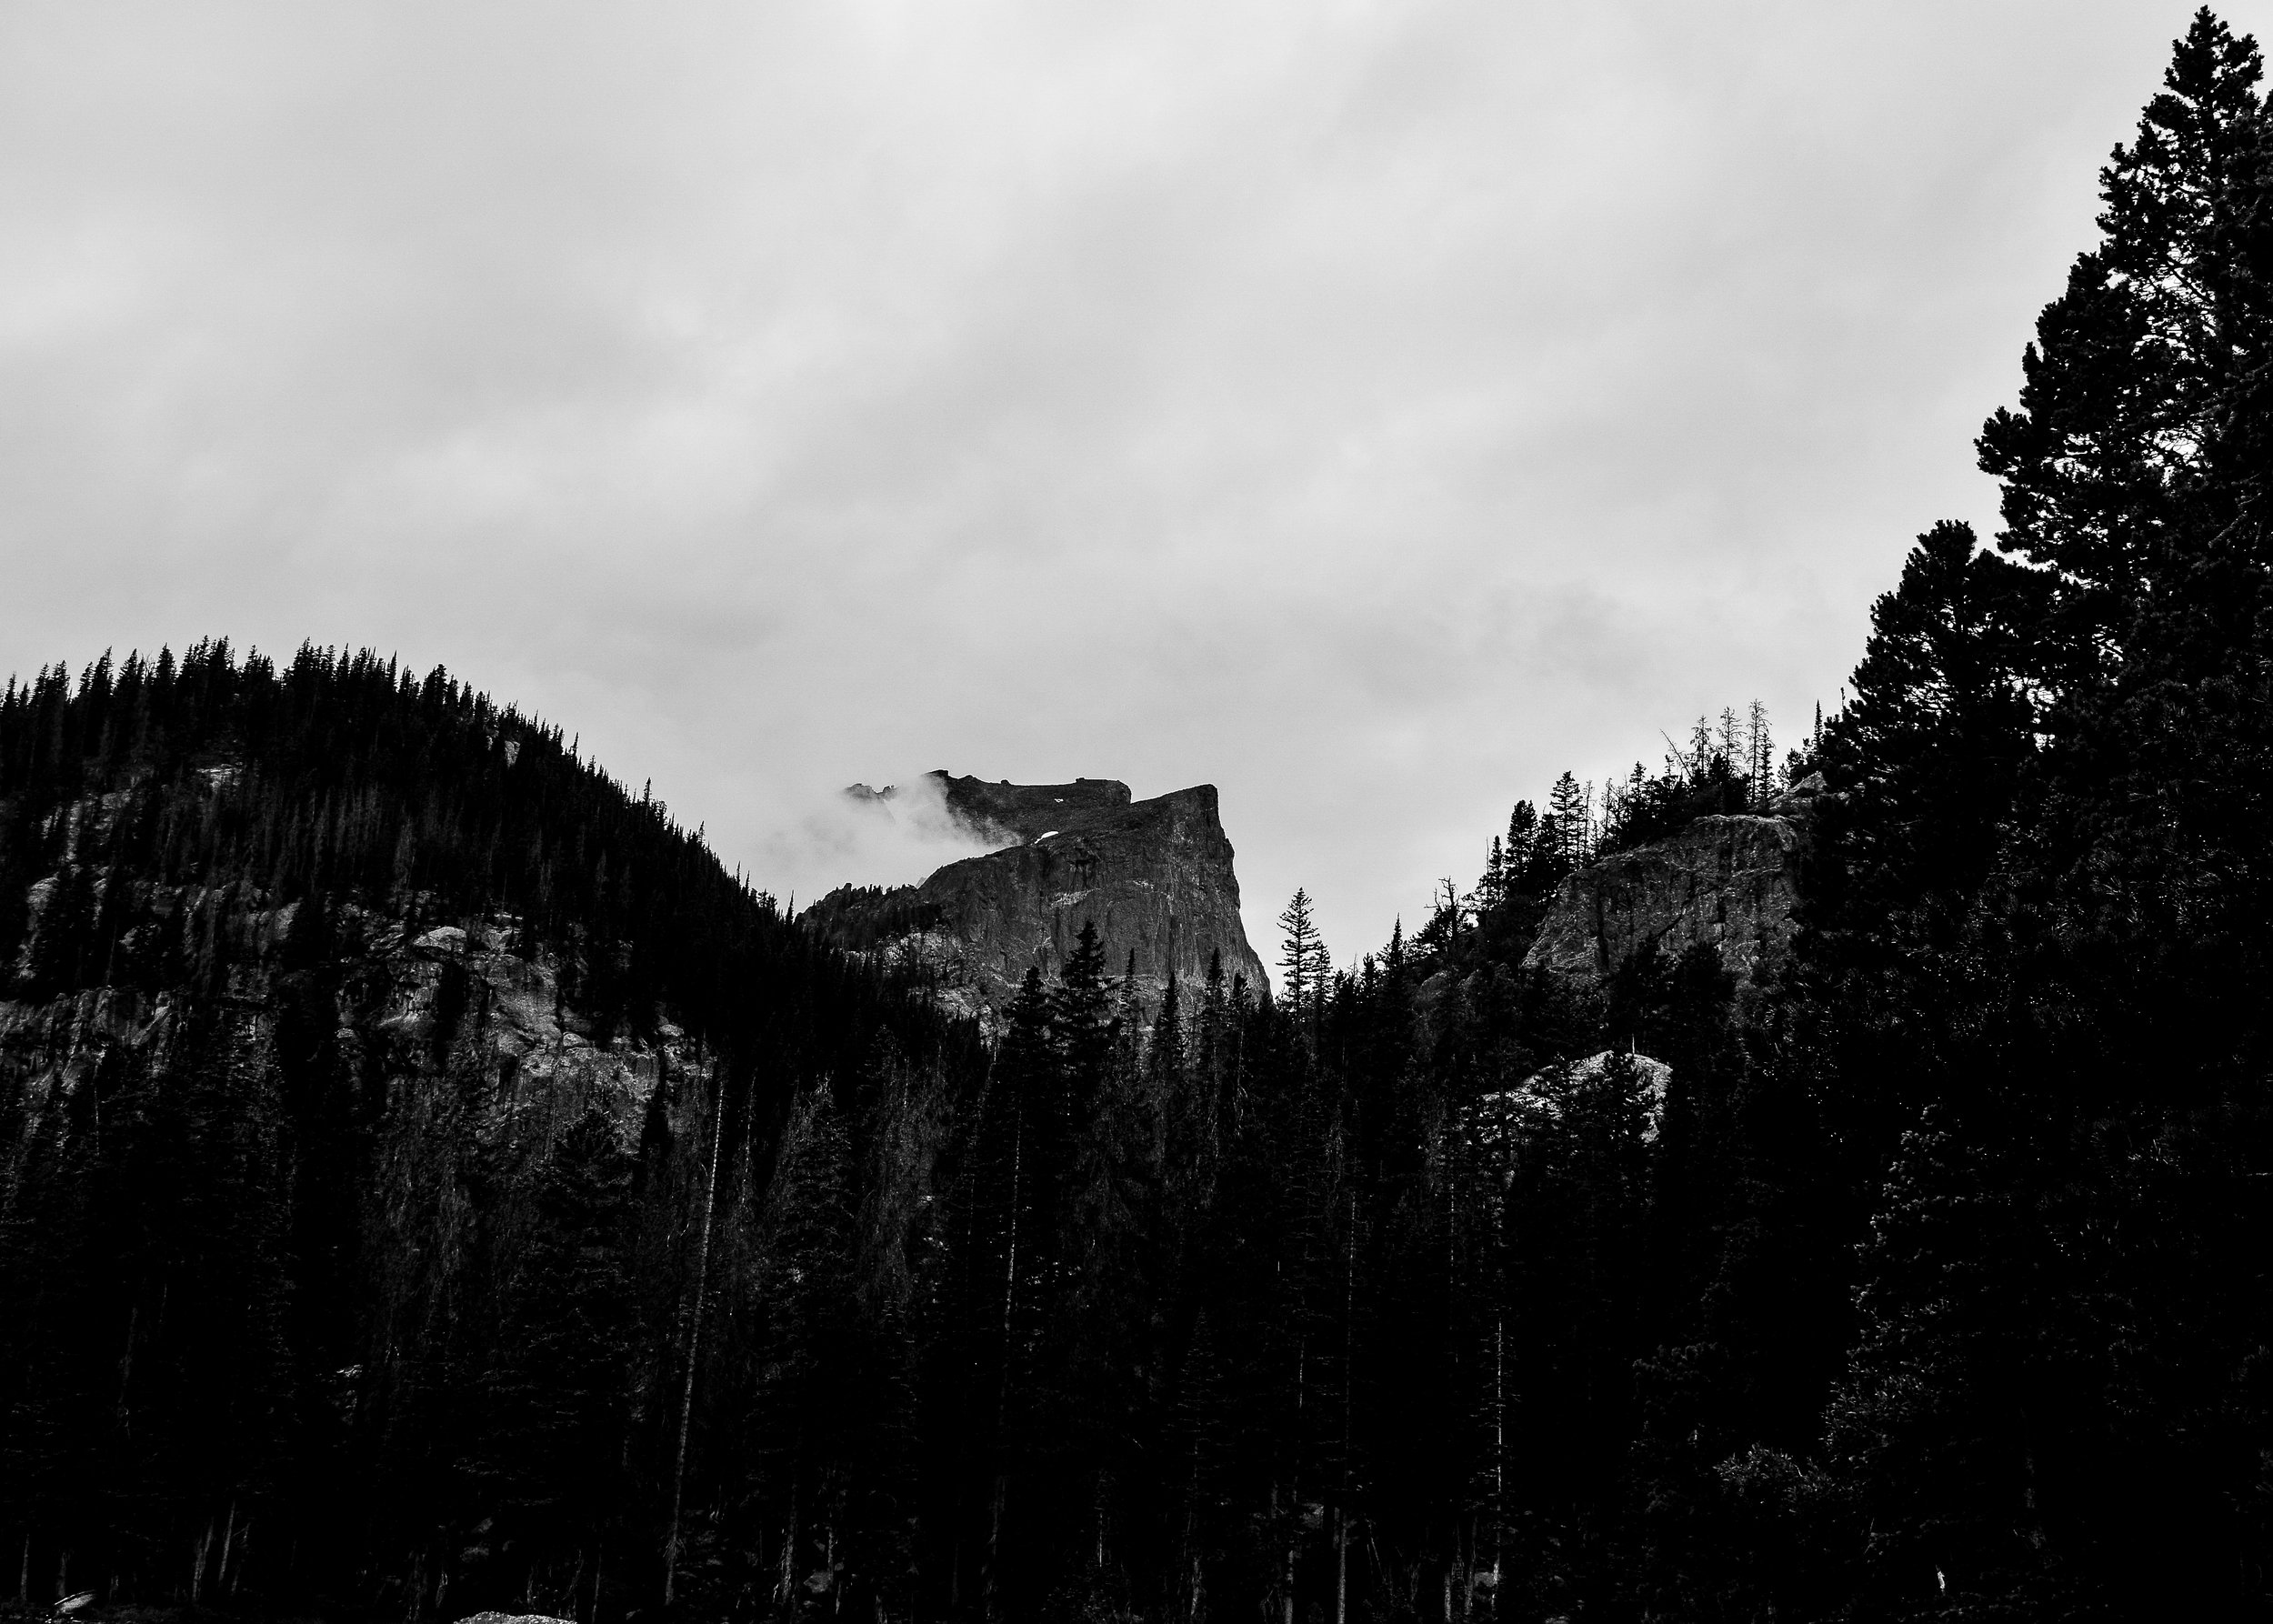 ROCKY MOUNTAIN NATIONAL PARK, 2018